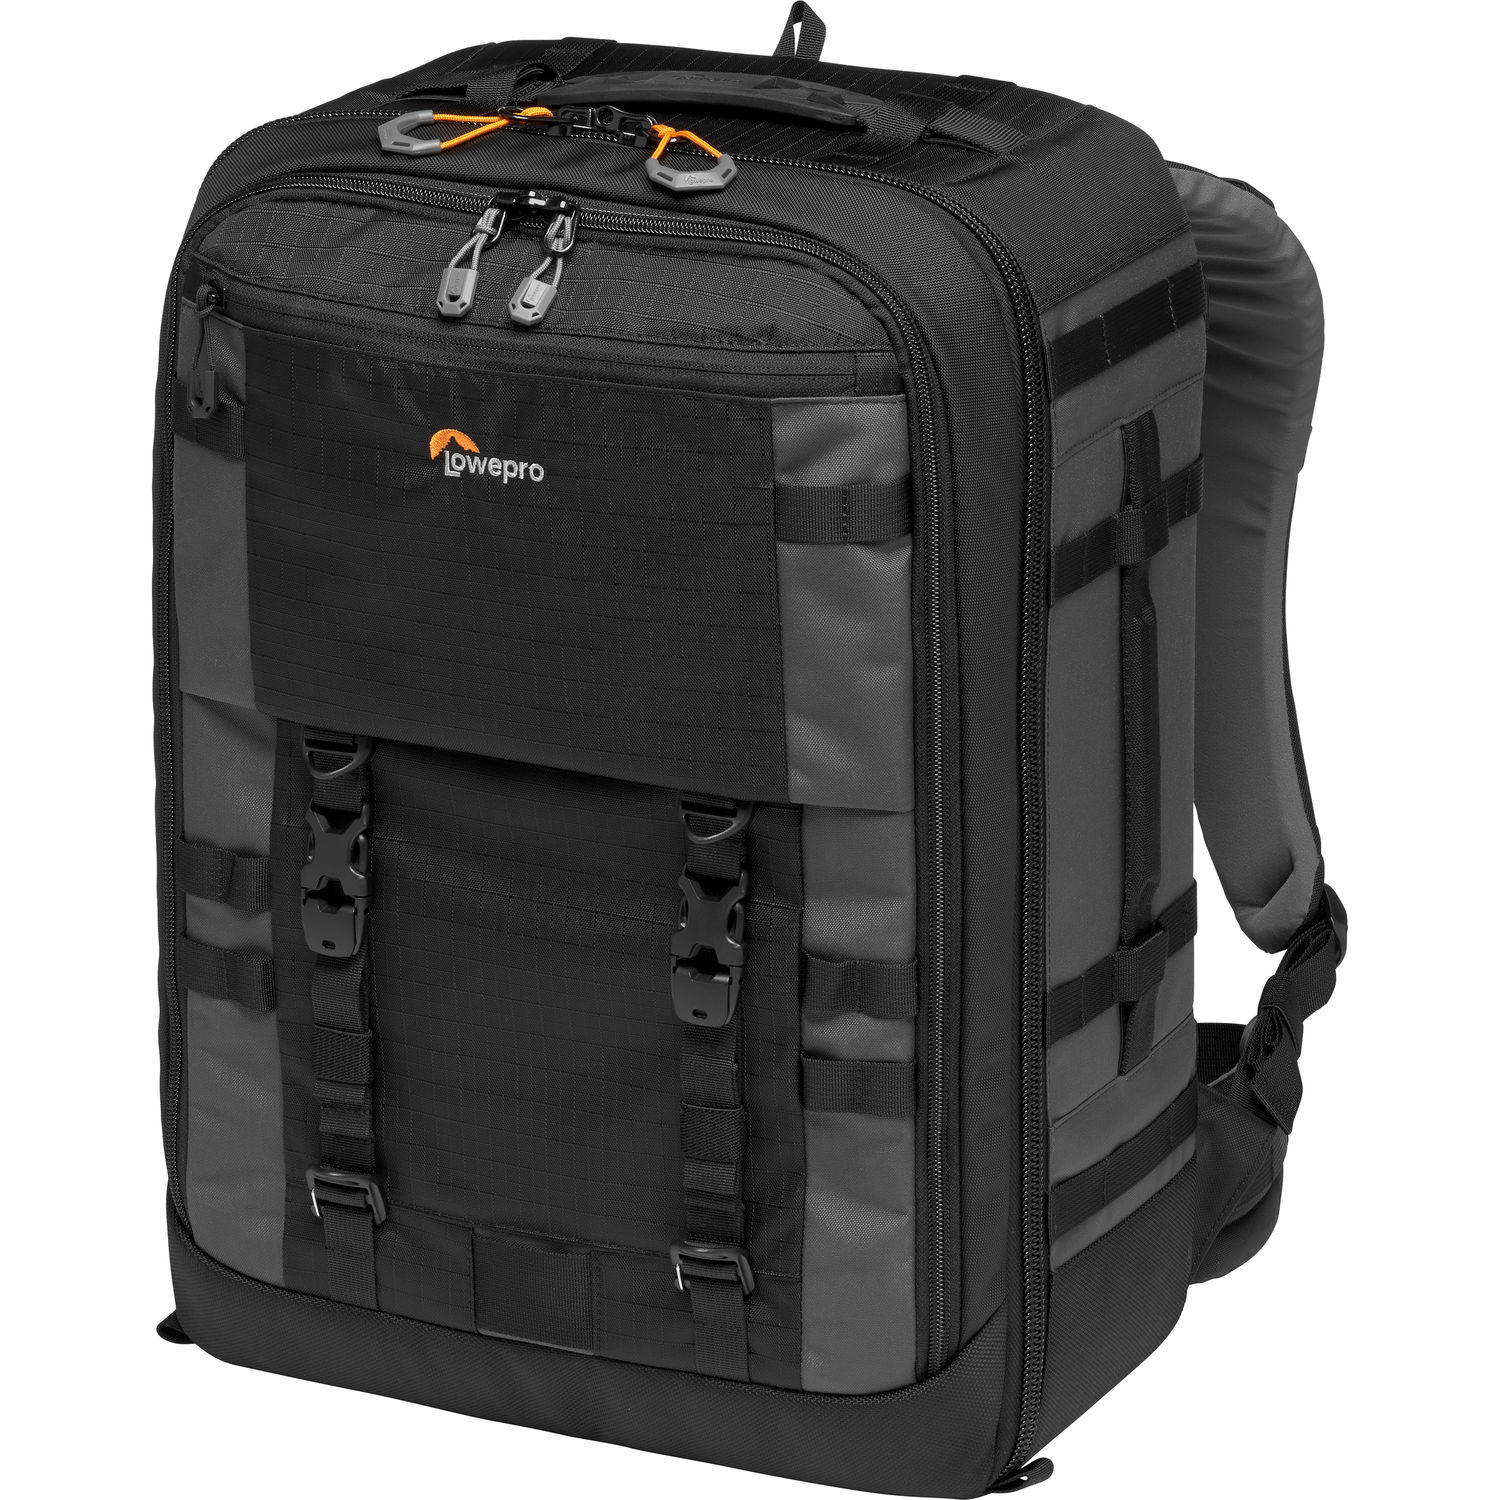 Lowepro Pro Trekker BP 450 AW II Backpac